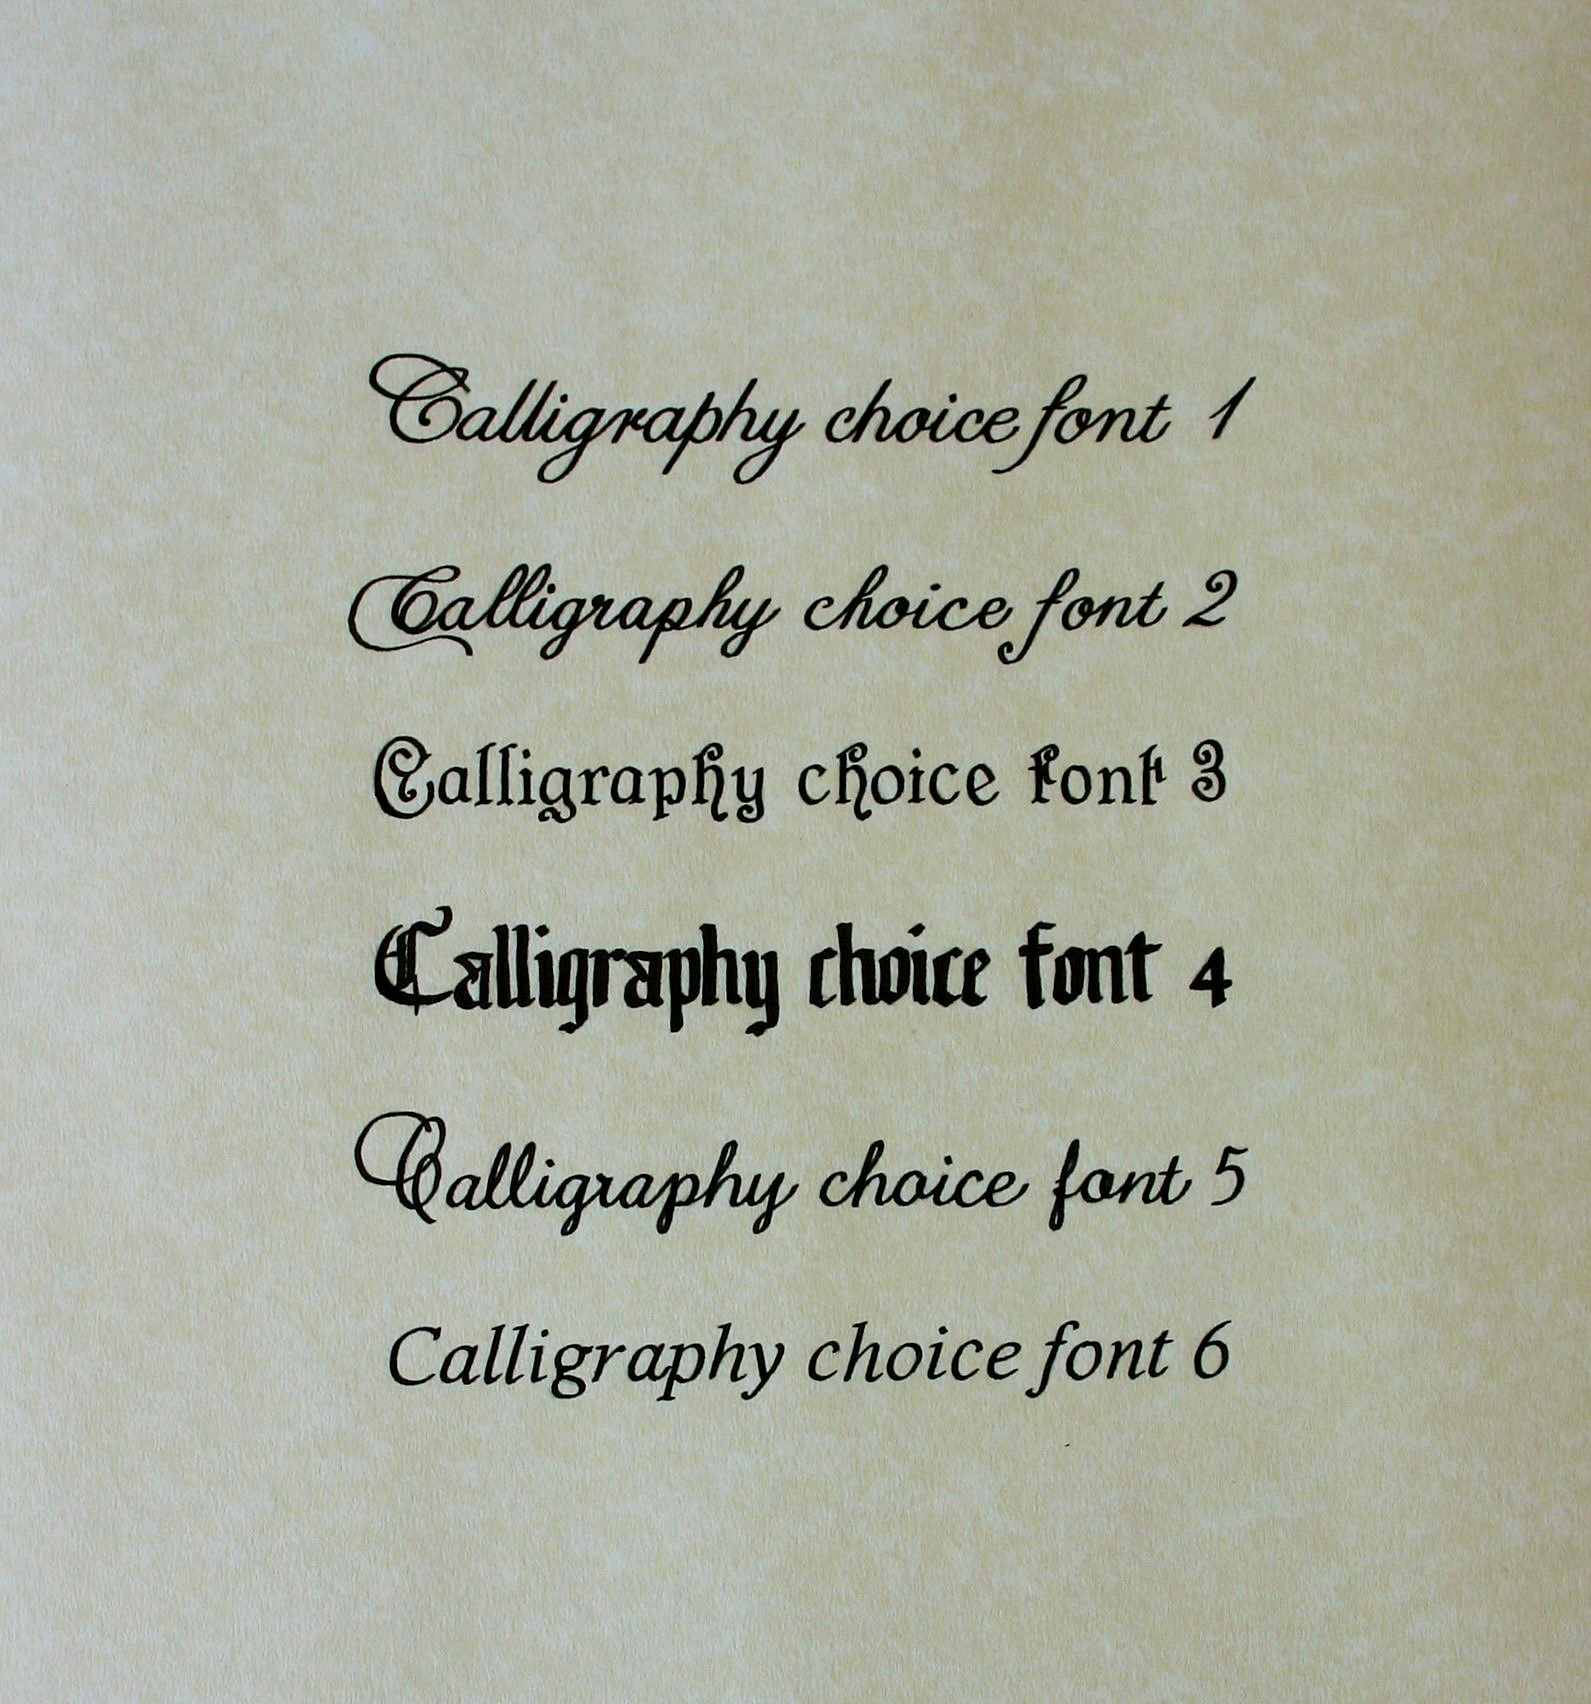 Calligraphy font options